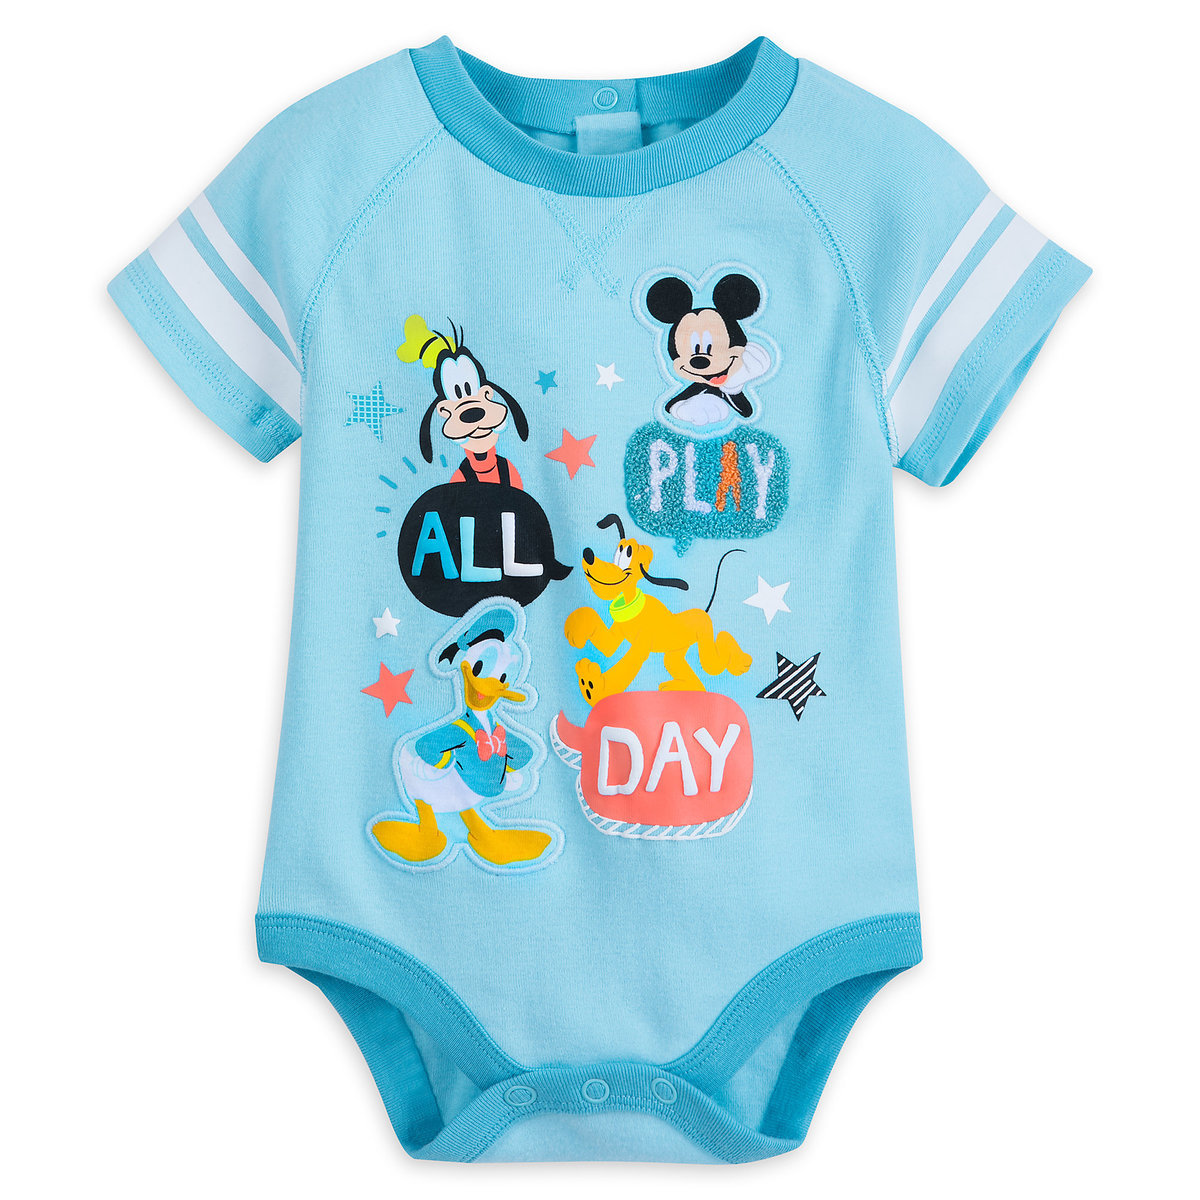 Mickey Mouse and Friends Cuddly Bodysuit for Baby | shopDisney